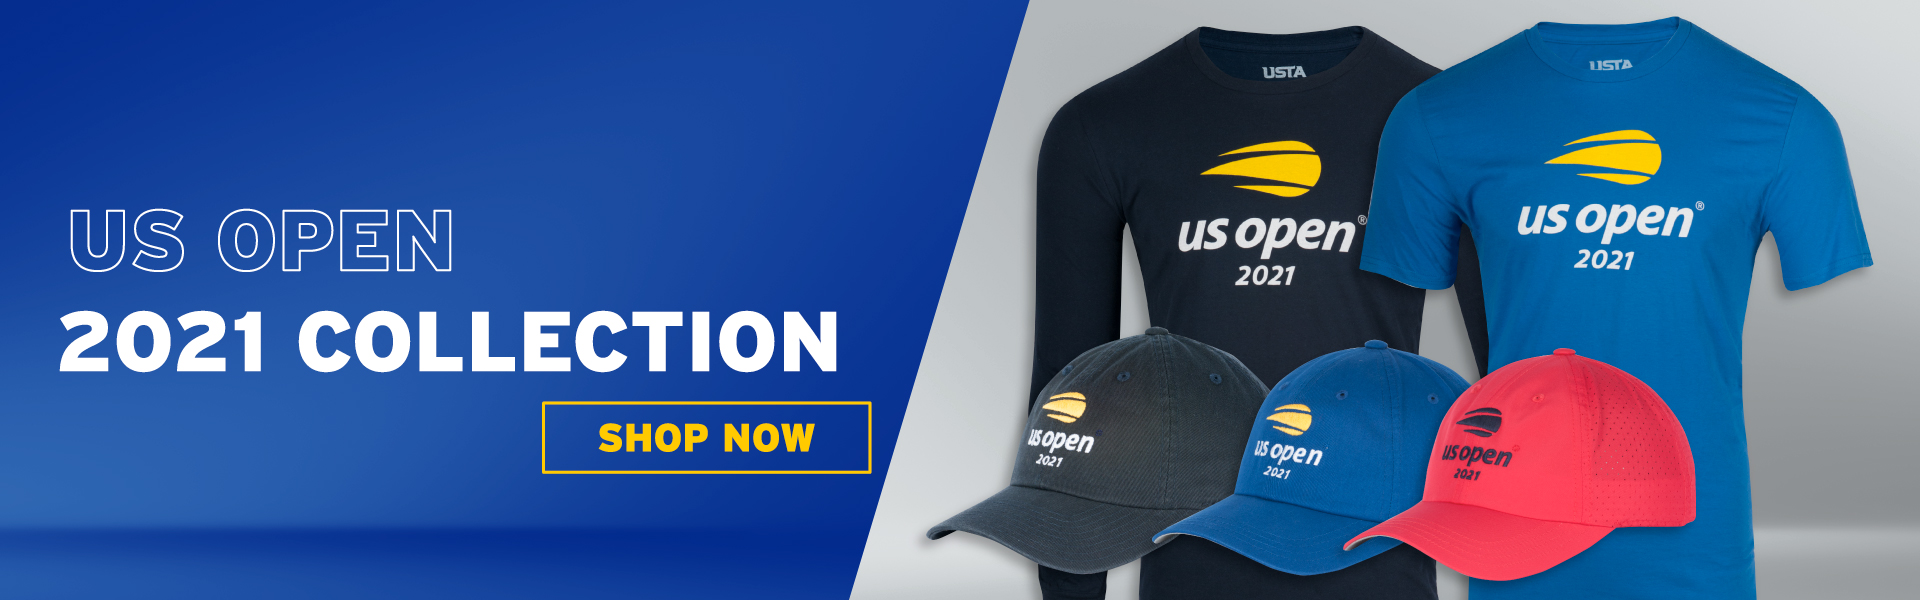 Shop the 2021 US Open Collection